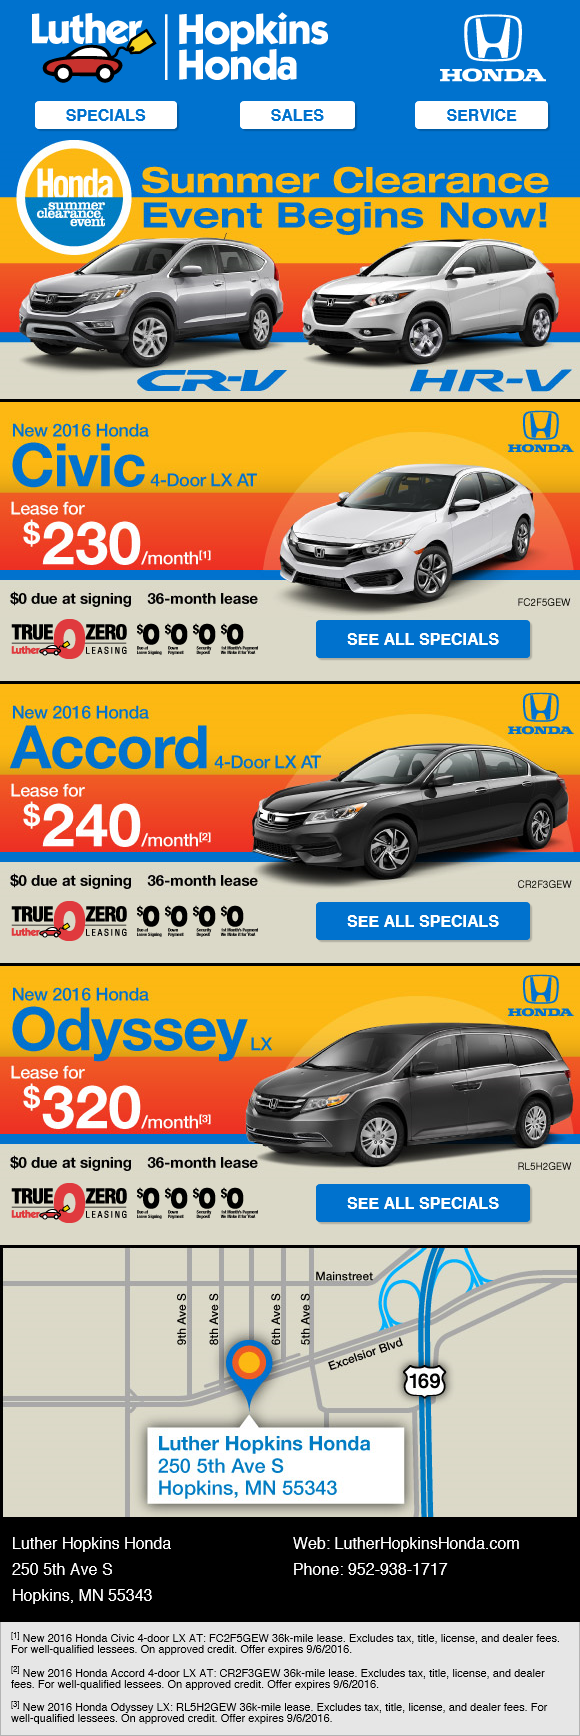 Luther Brookdale Honda Email